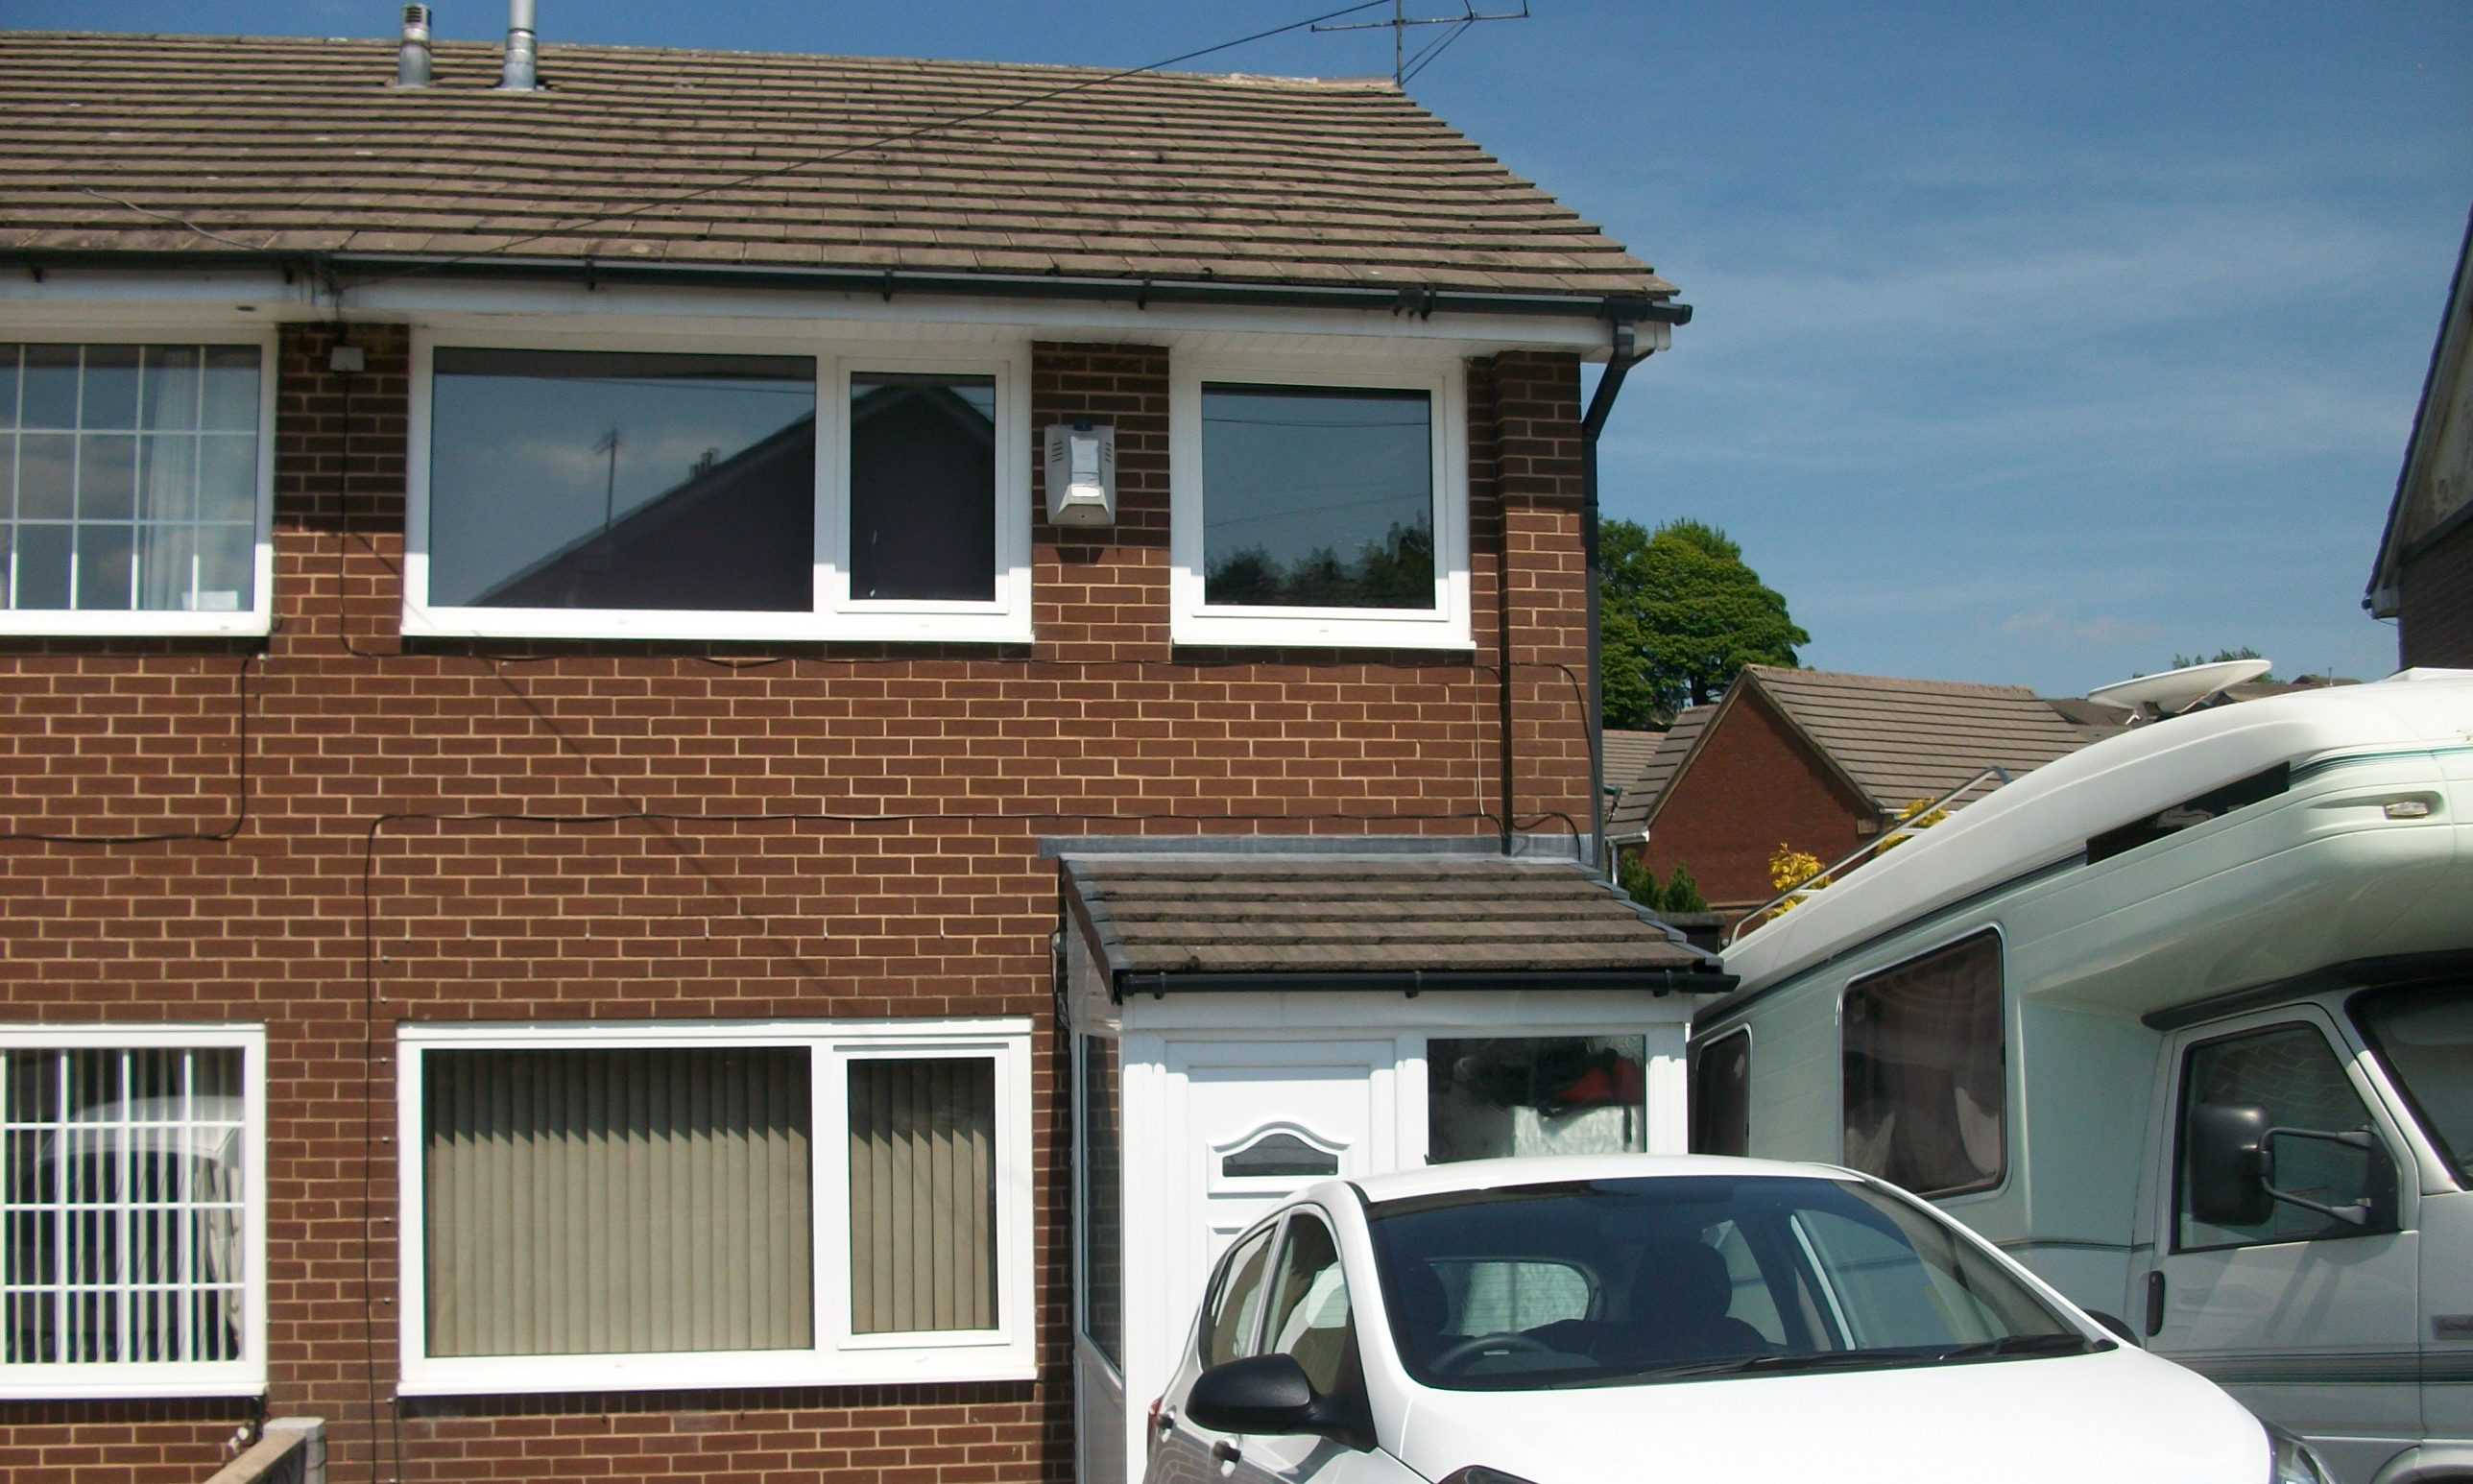 EPCs in Accrington on semi-detached properties